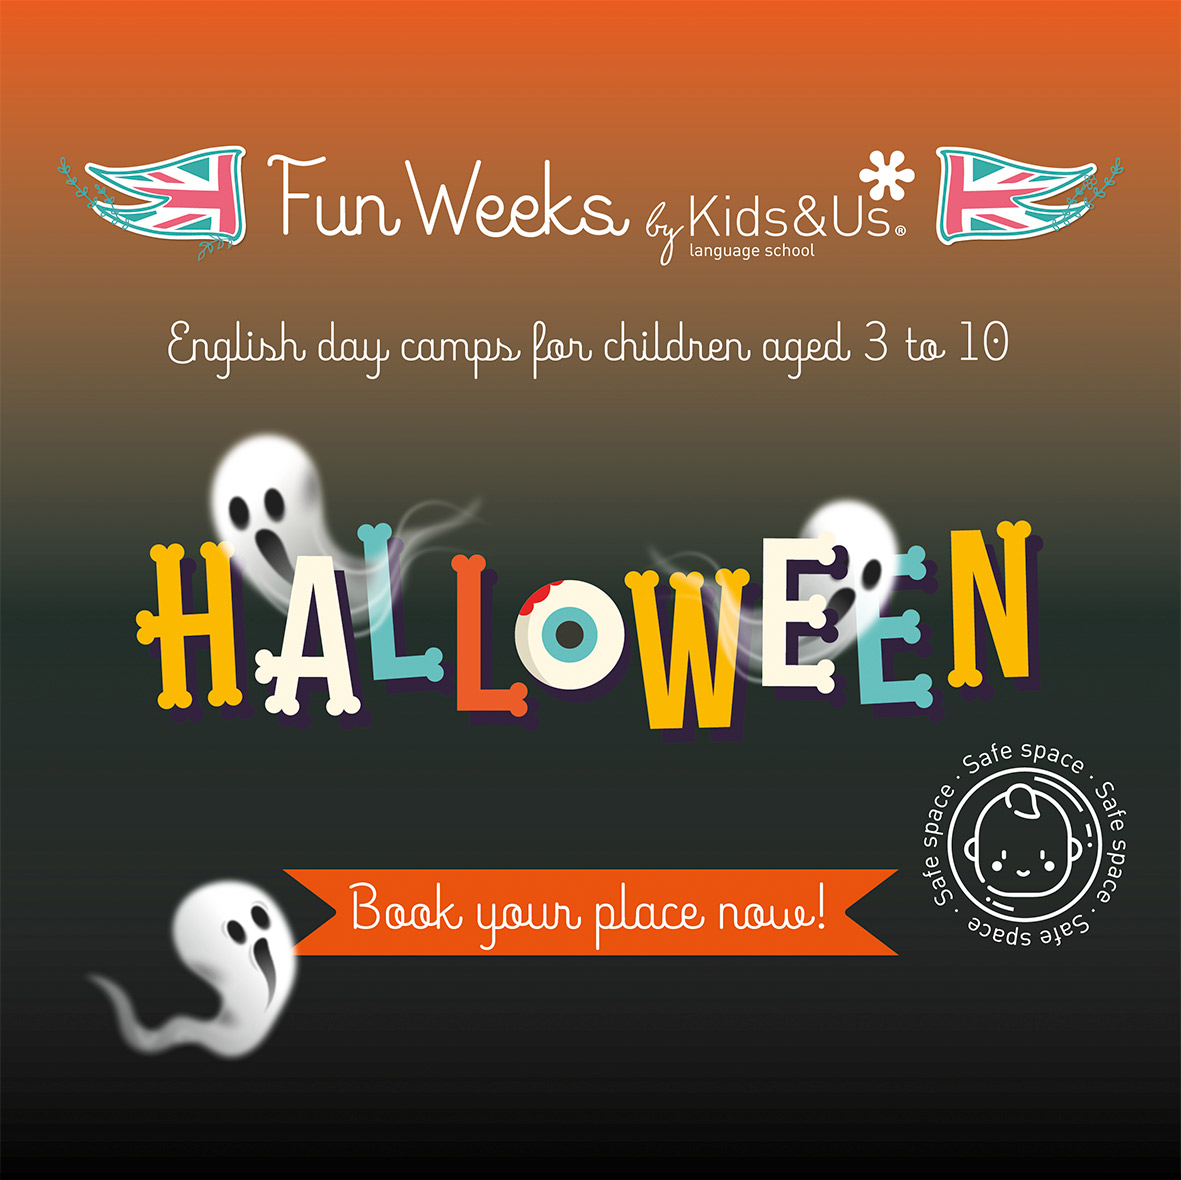 We are getting ready for the Halloween Fun Weeks at Kids&Us schools